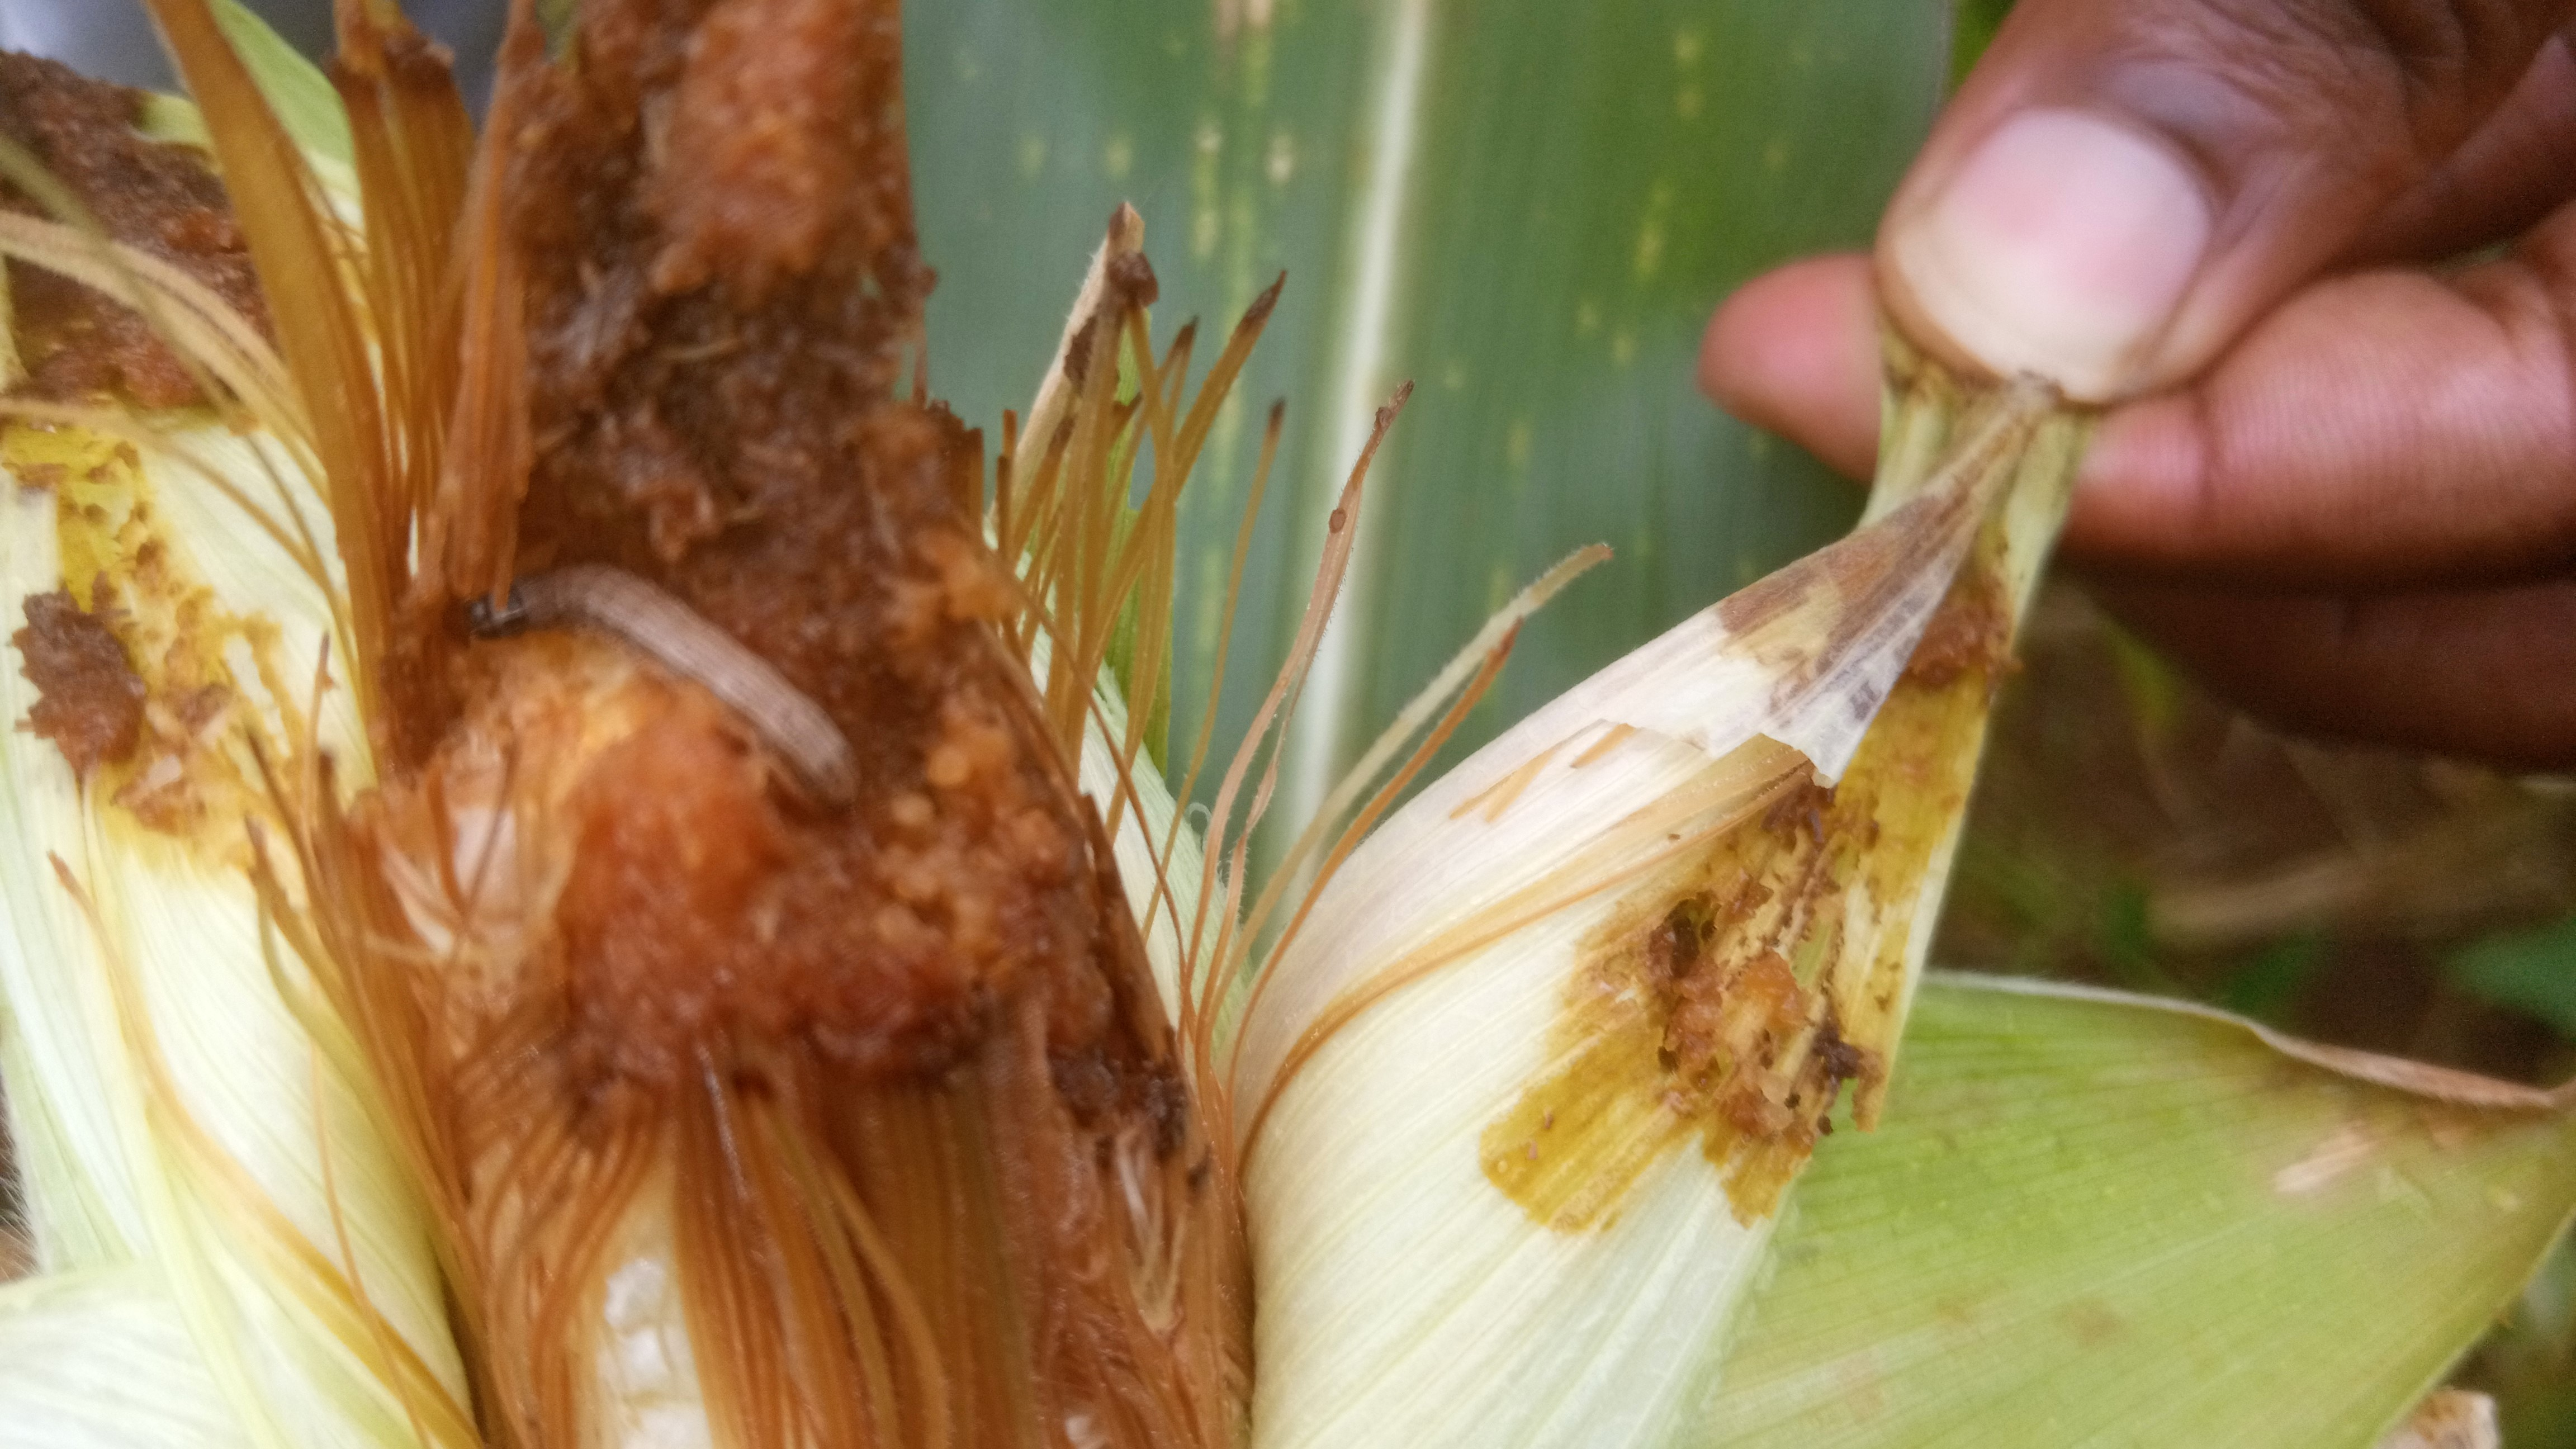 Maize is an important staple crop in Zambia yet highly targeted by fall armworm. Photo: World Agroforestry/ Lydia Amanzi